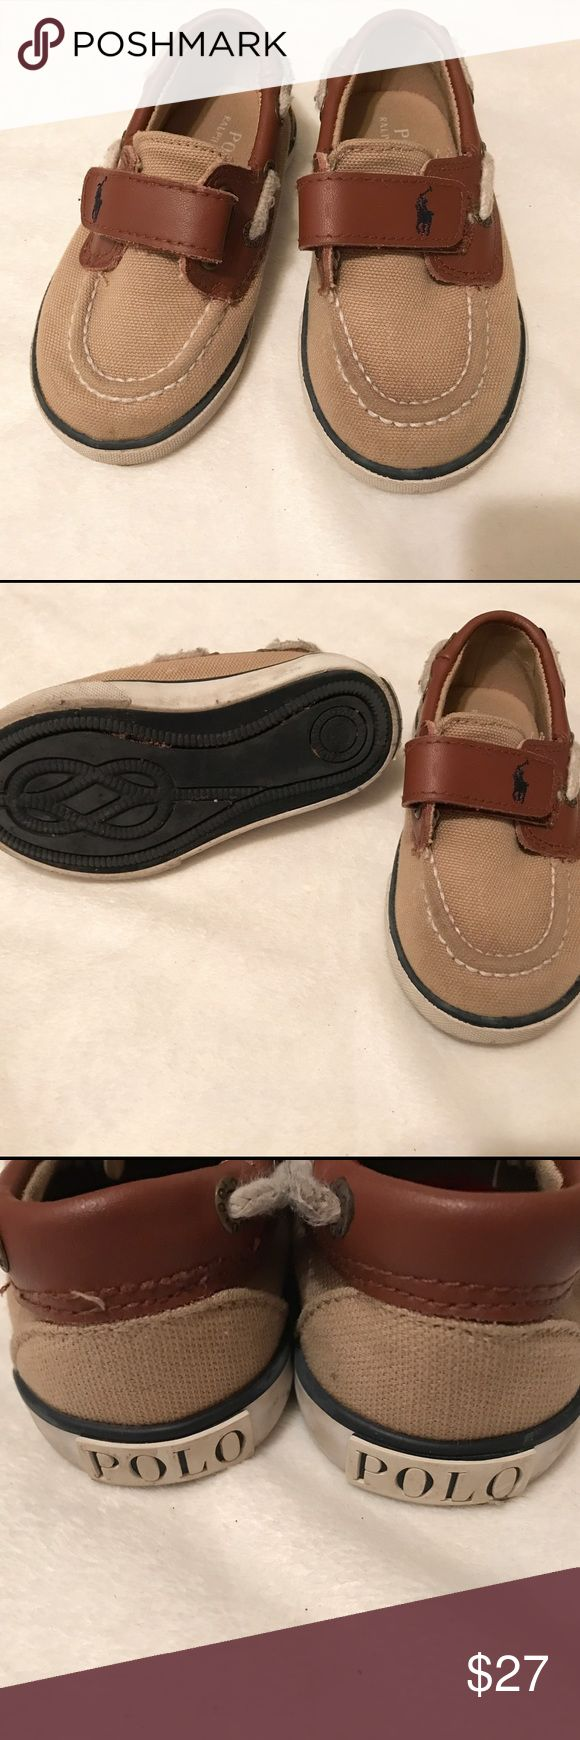 Children's Polo by Ralph Lauren boat shoes Excellent condition, were only worn a handful of times. Polo by Ralph Lauren Shoes Dress Shoes